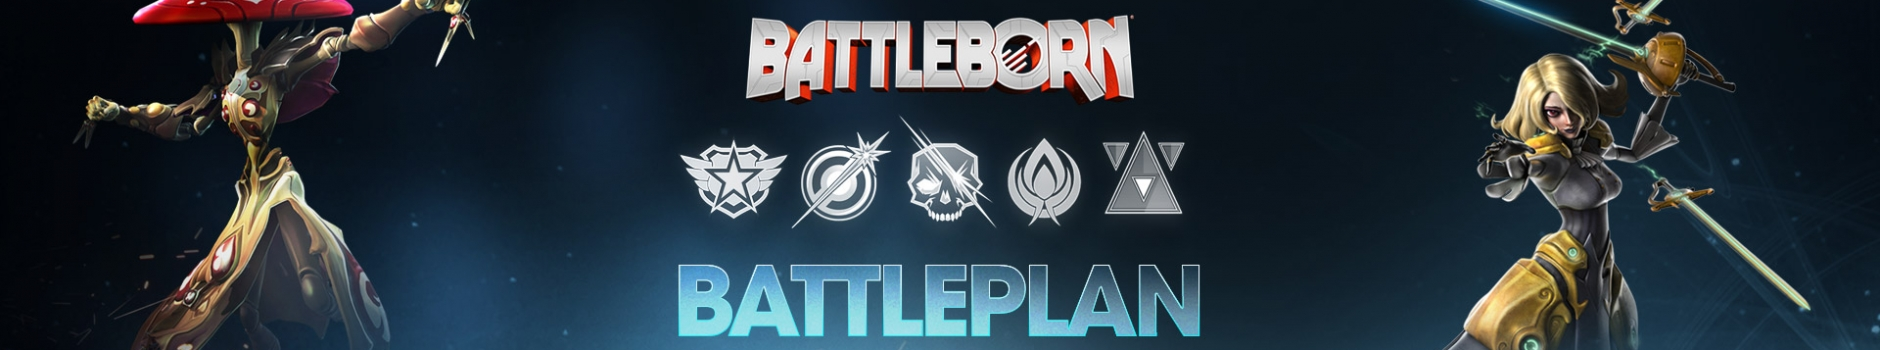 Battleplan 44: Hot Fixes, Heavy Metal Covers, and Low Gravity Rumble